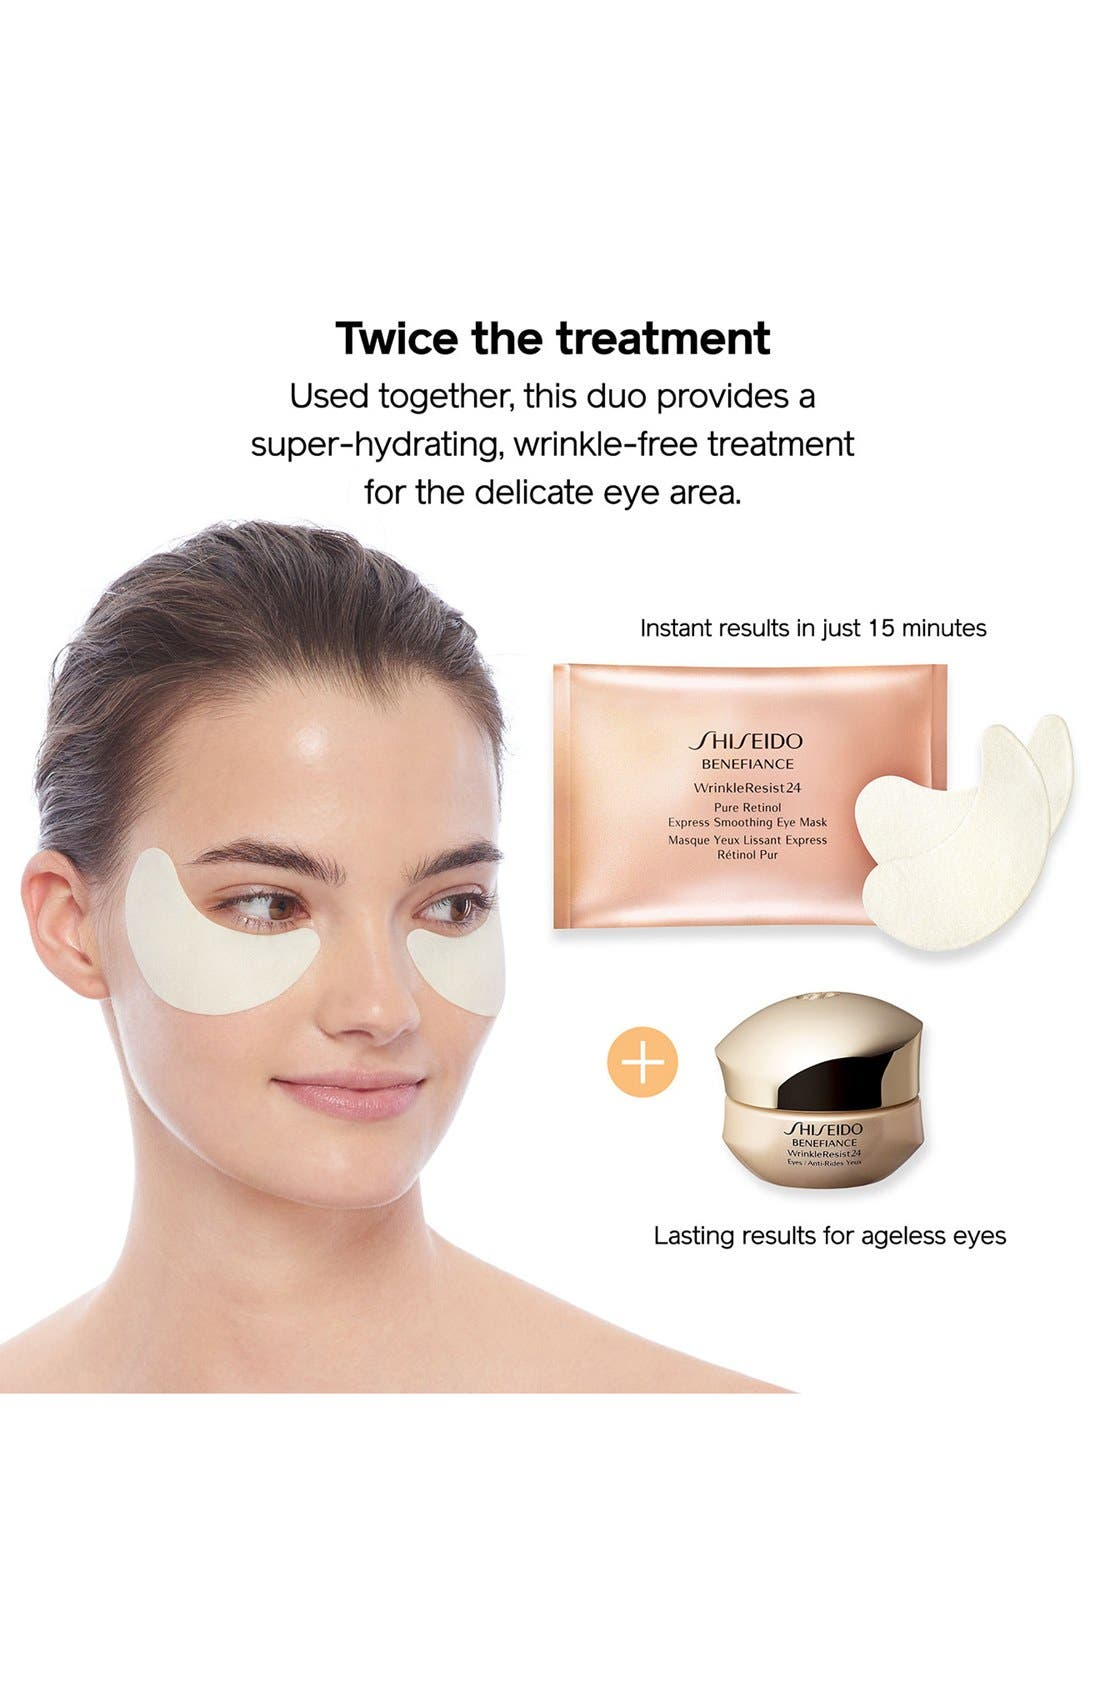 Benefiance WrinkleResist24 Pure Retinol Express Smoothing Eye Mask,                             Alternate thumbnail 5, color,                             NO COLOR